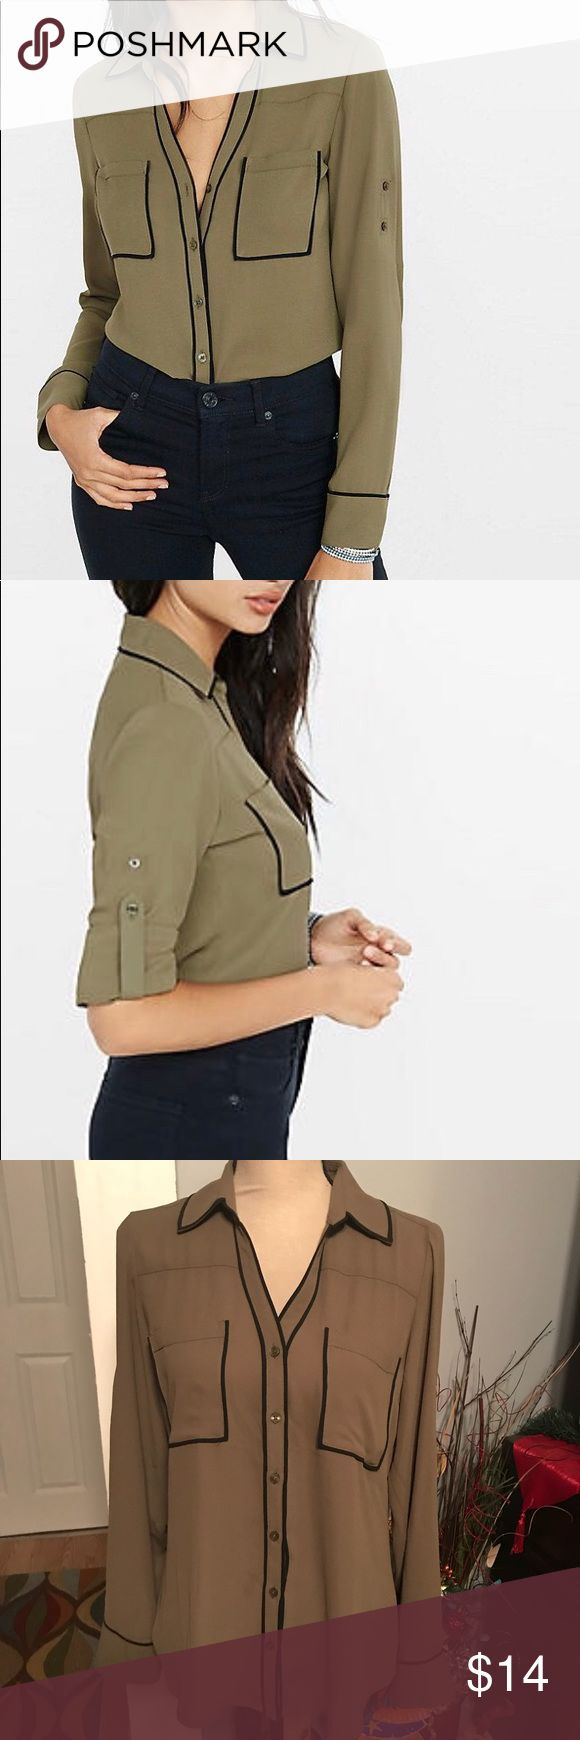 Slim Fit Olive Contrast Piping Portofino Shirt Style # 9792223C This elegant, slim fit olive blouse with contrast piping has a classic look. Its distinctive architectural detail in luxe, semi-sheer crepe gives it an effortlessly sexy style. Slim fit Point collar, notch neckline, button front Long convertible sleeves with roll tabs Patch breast pockets, shirttail hem Contrasting piping at collar, placket, pockets & cuffs Polyester; Machine wash Imported Express Tops Button Down Shirts